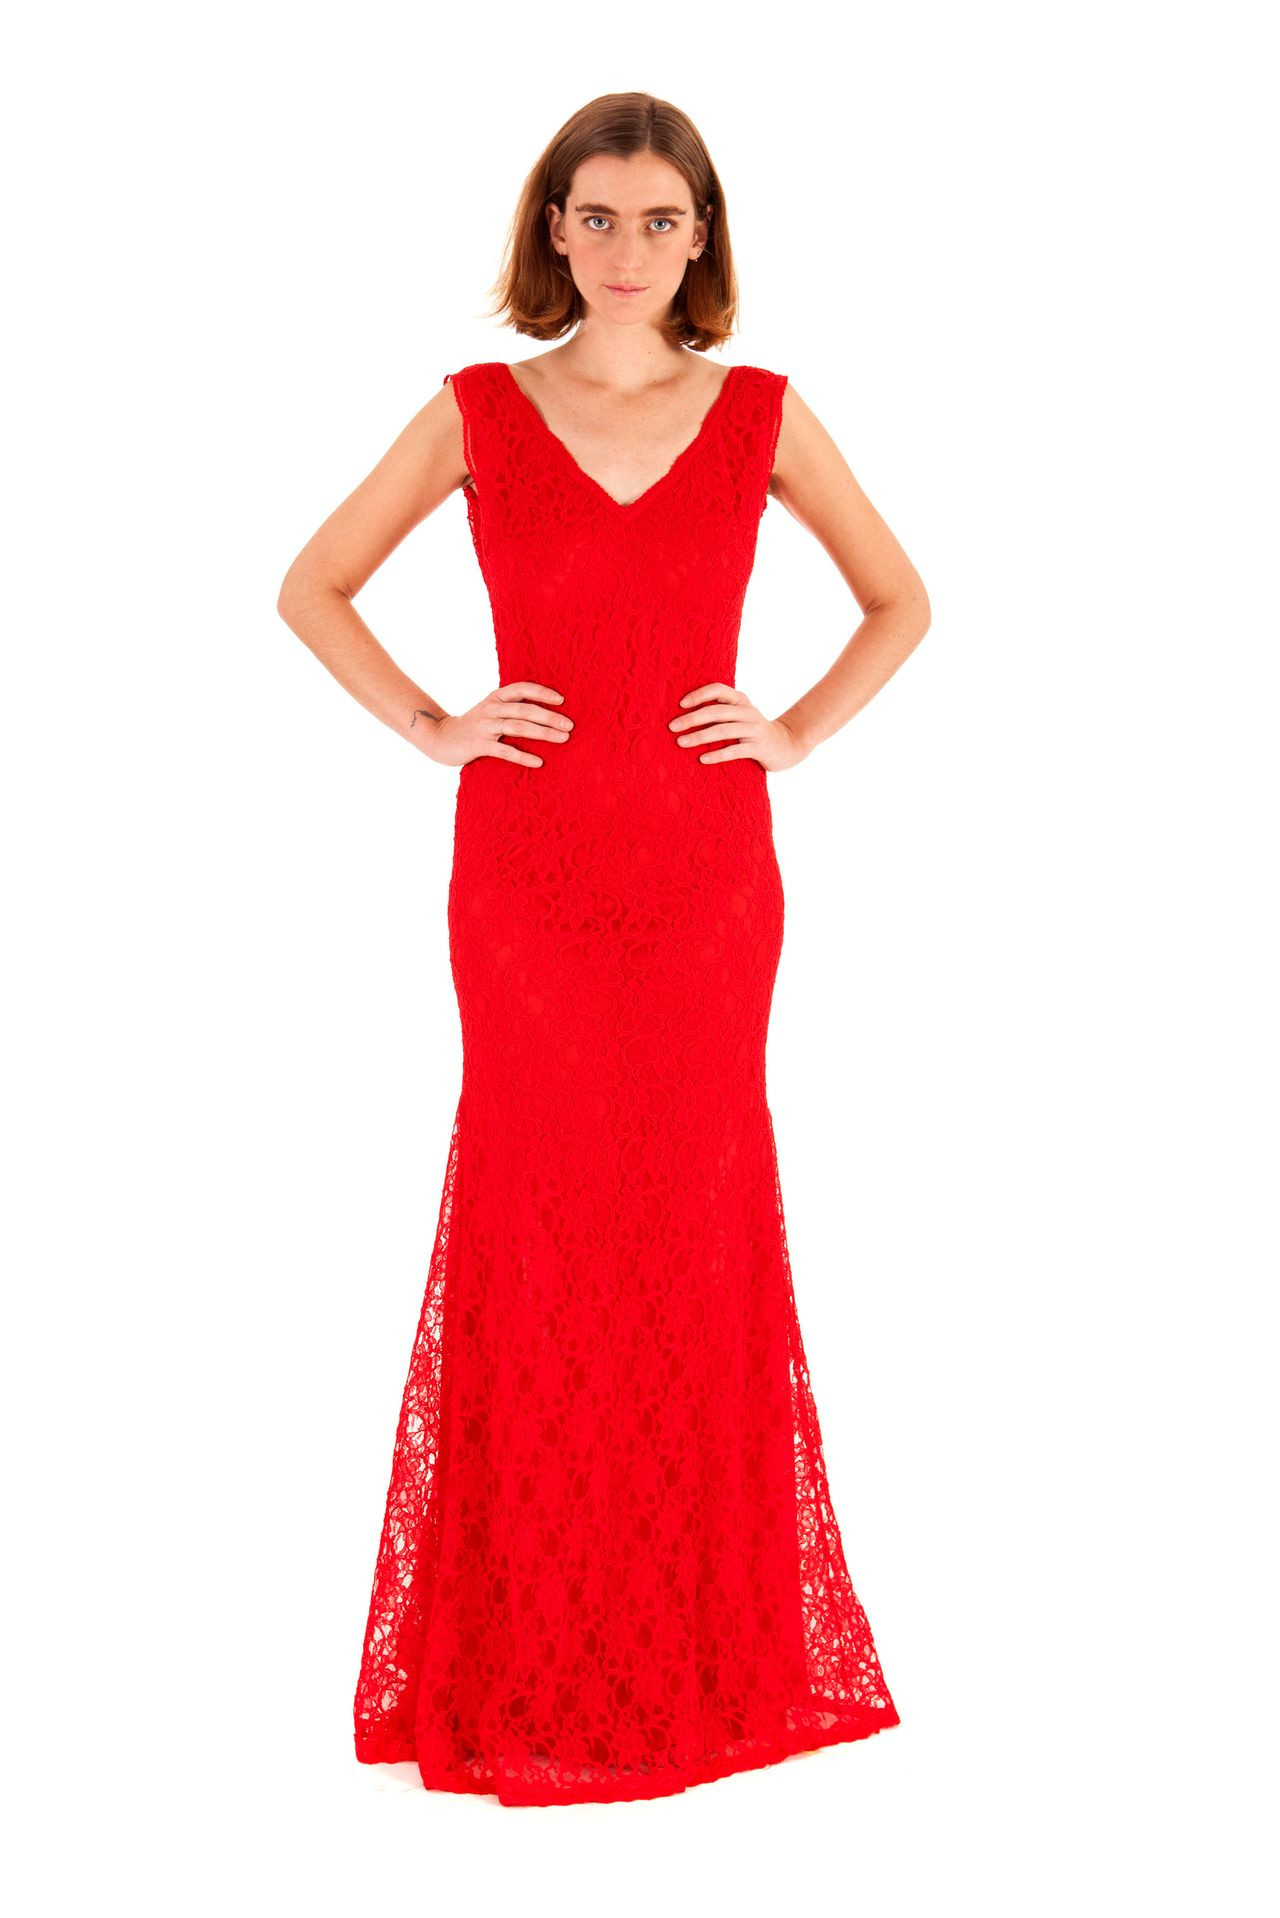 Ana Maria Couture - Beatrice Rosso